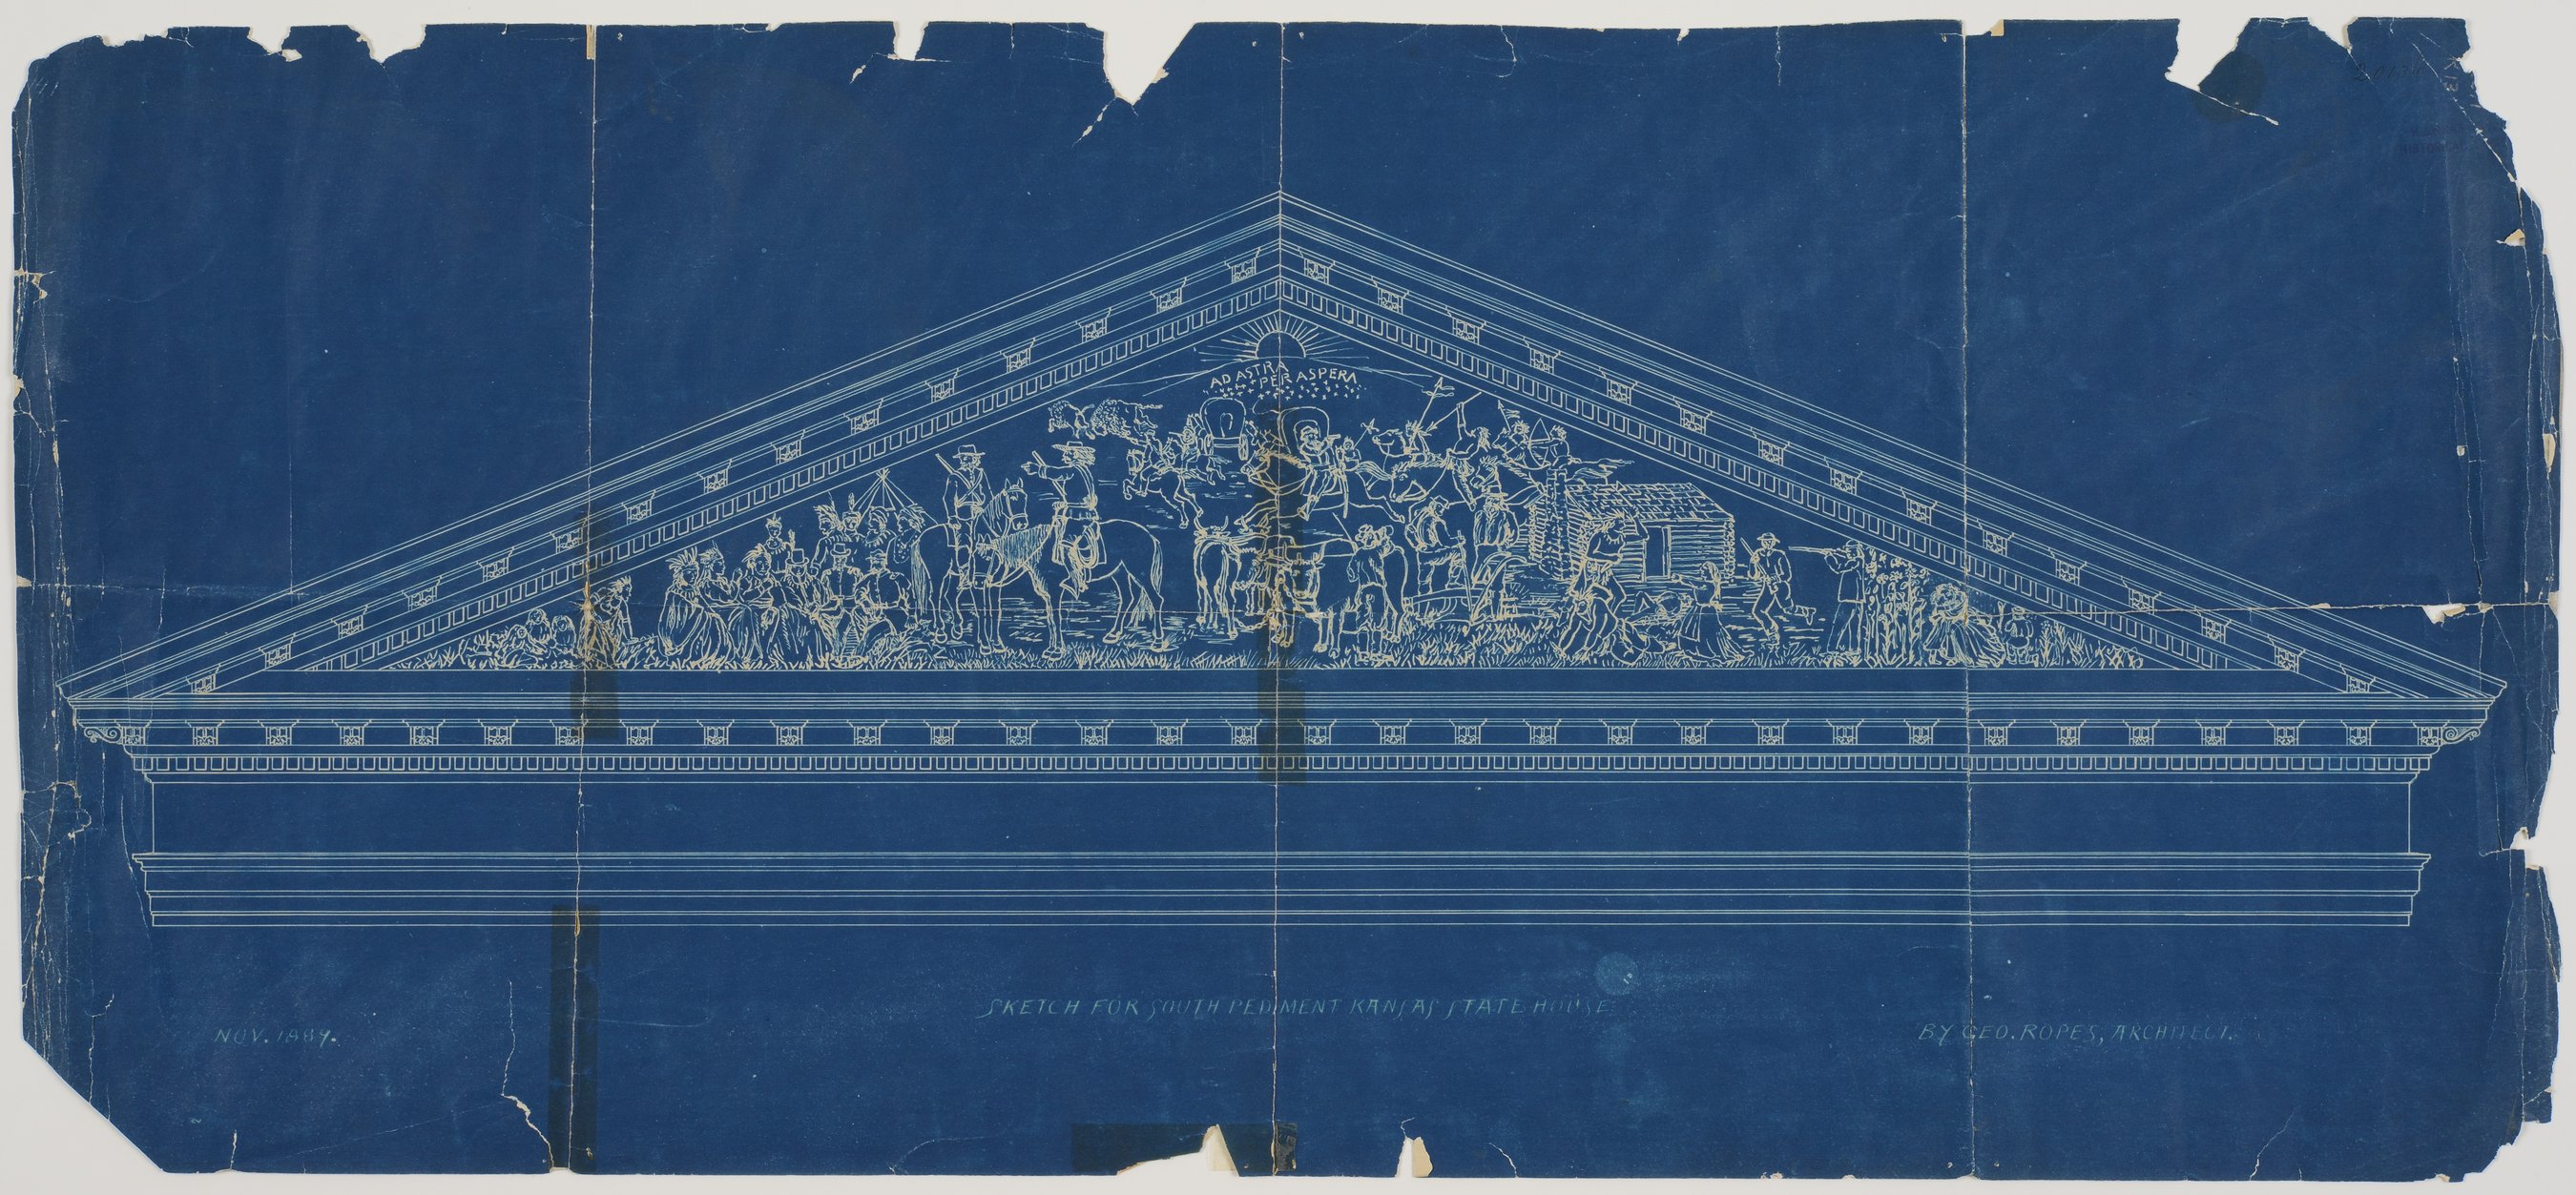 Sketch for the south pediment on the Kansas state house in Topeka, Kansas